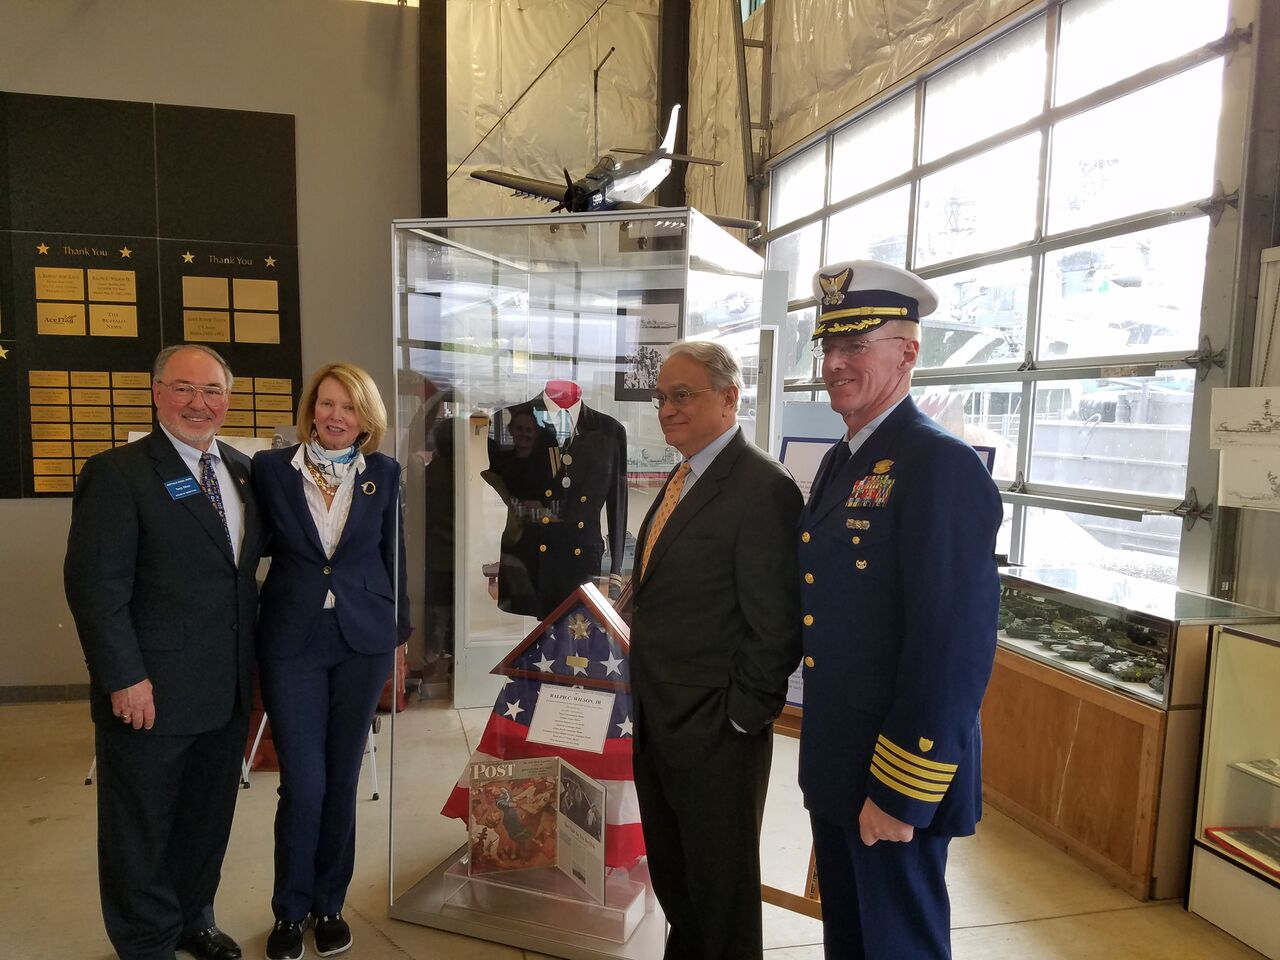 Buffalo Naval Park Honors WWII Veteran client of Tipping Point Communications